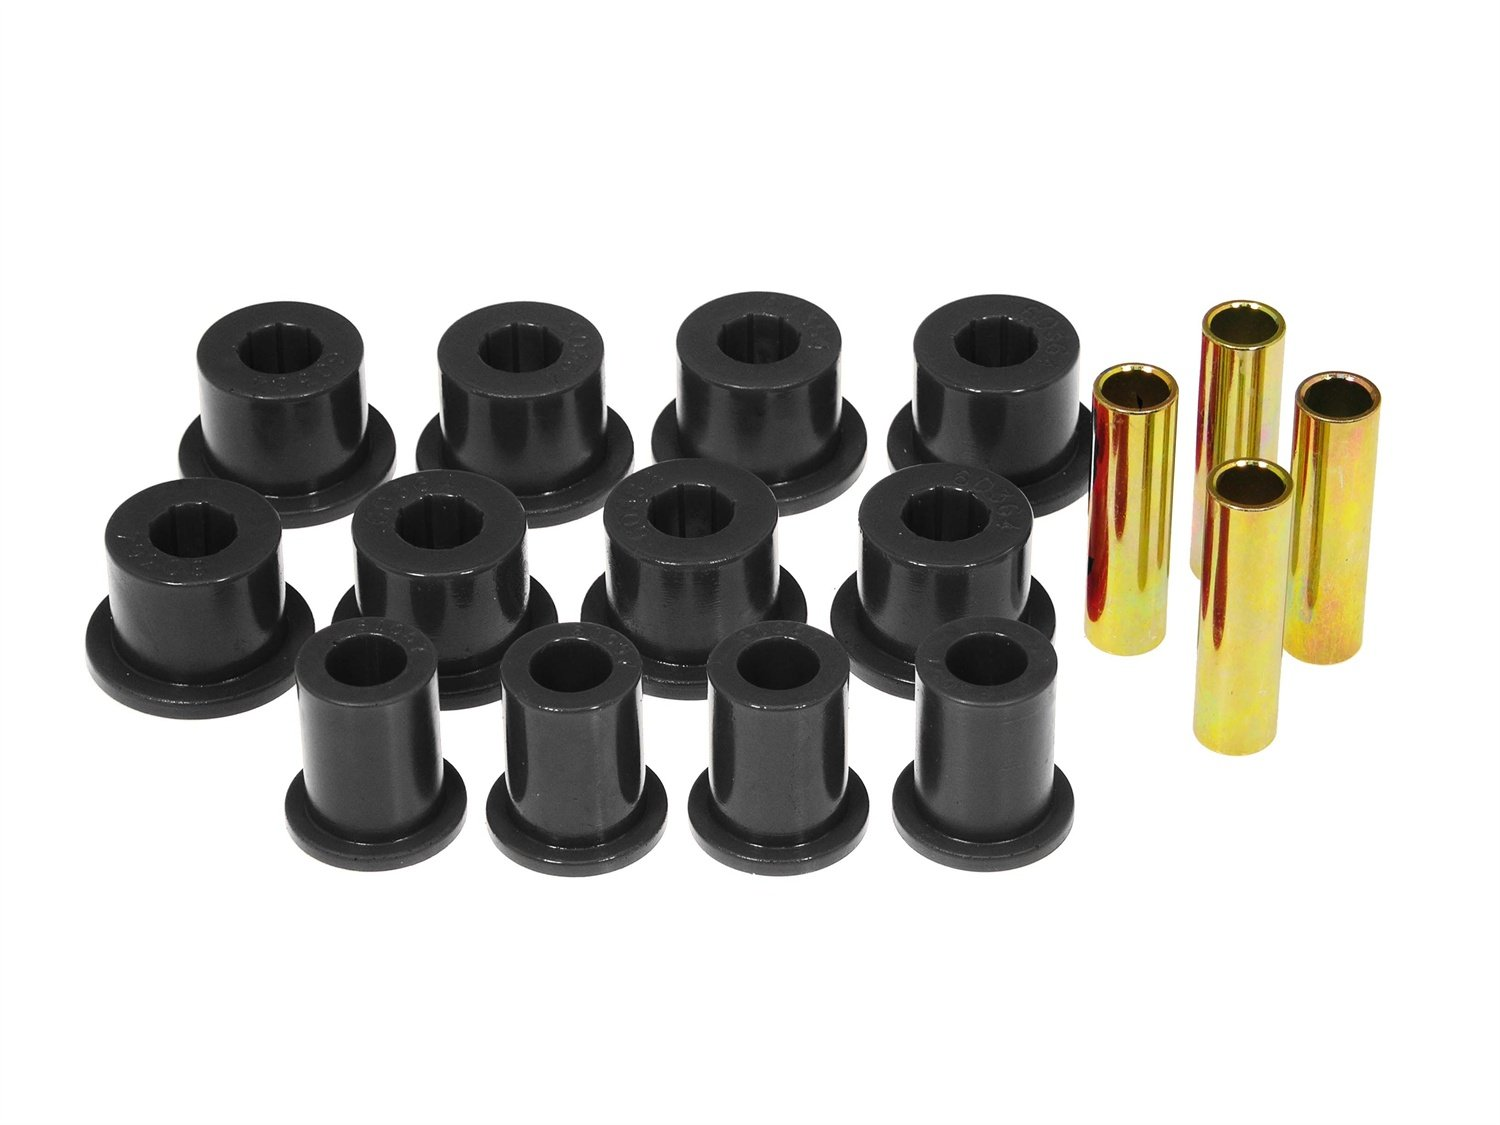 Prothane 18-1006-BL Black Rear Spring Eye and Shackle Bushing Kit by Prothane